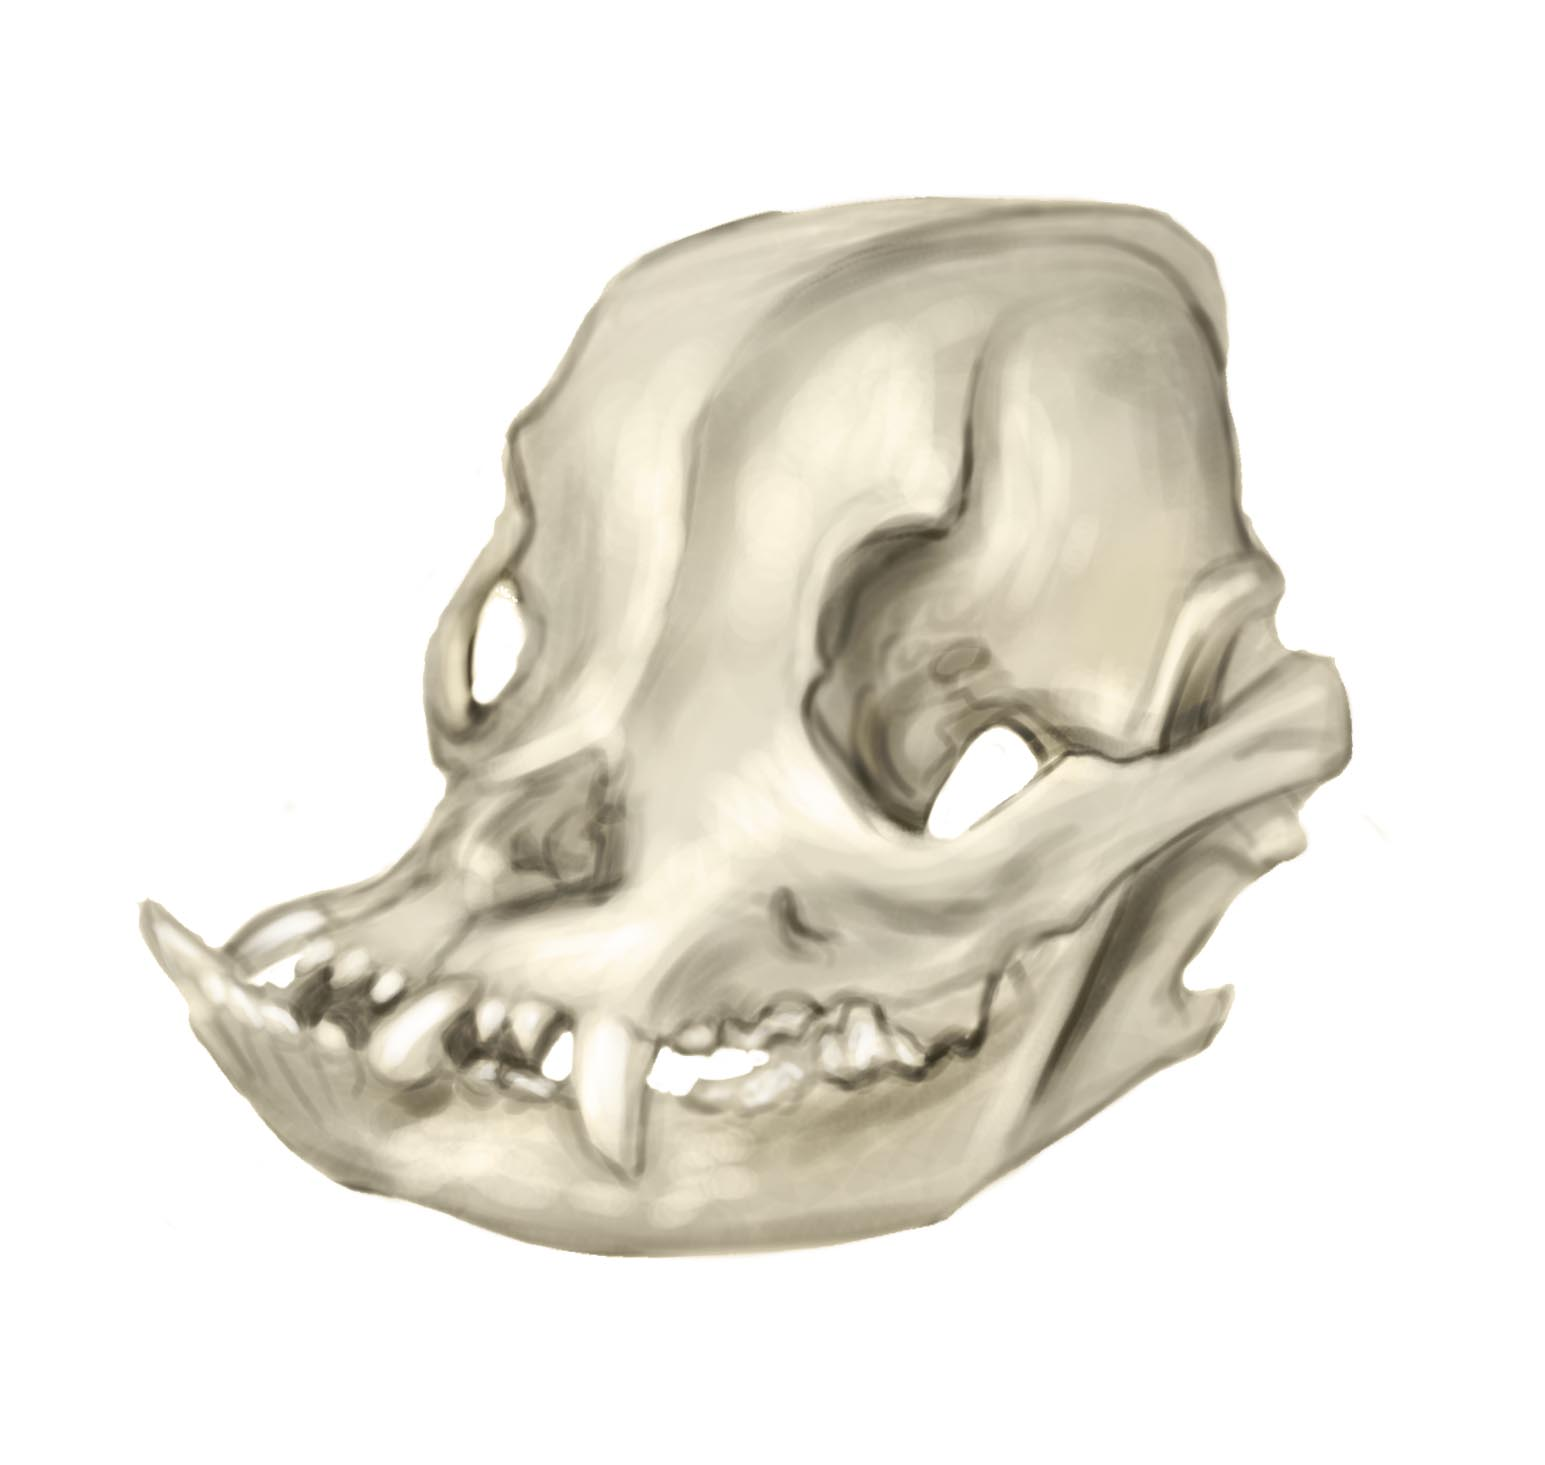 Dog Skull Anatomy http://flustercup.blogspot.com/2011/02/animal-anatomy-bull-dog-skull-sketch.html